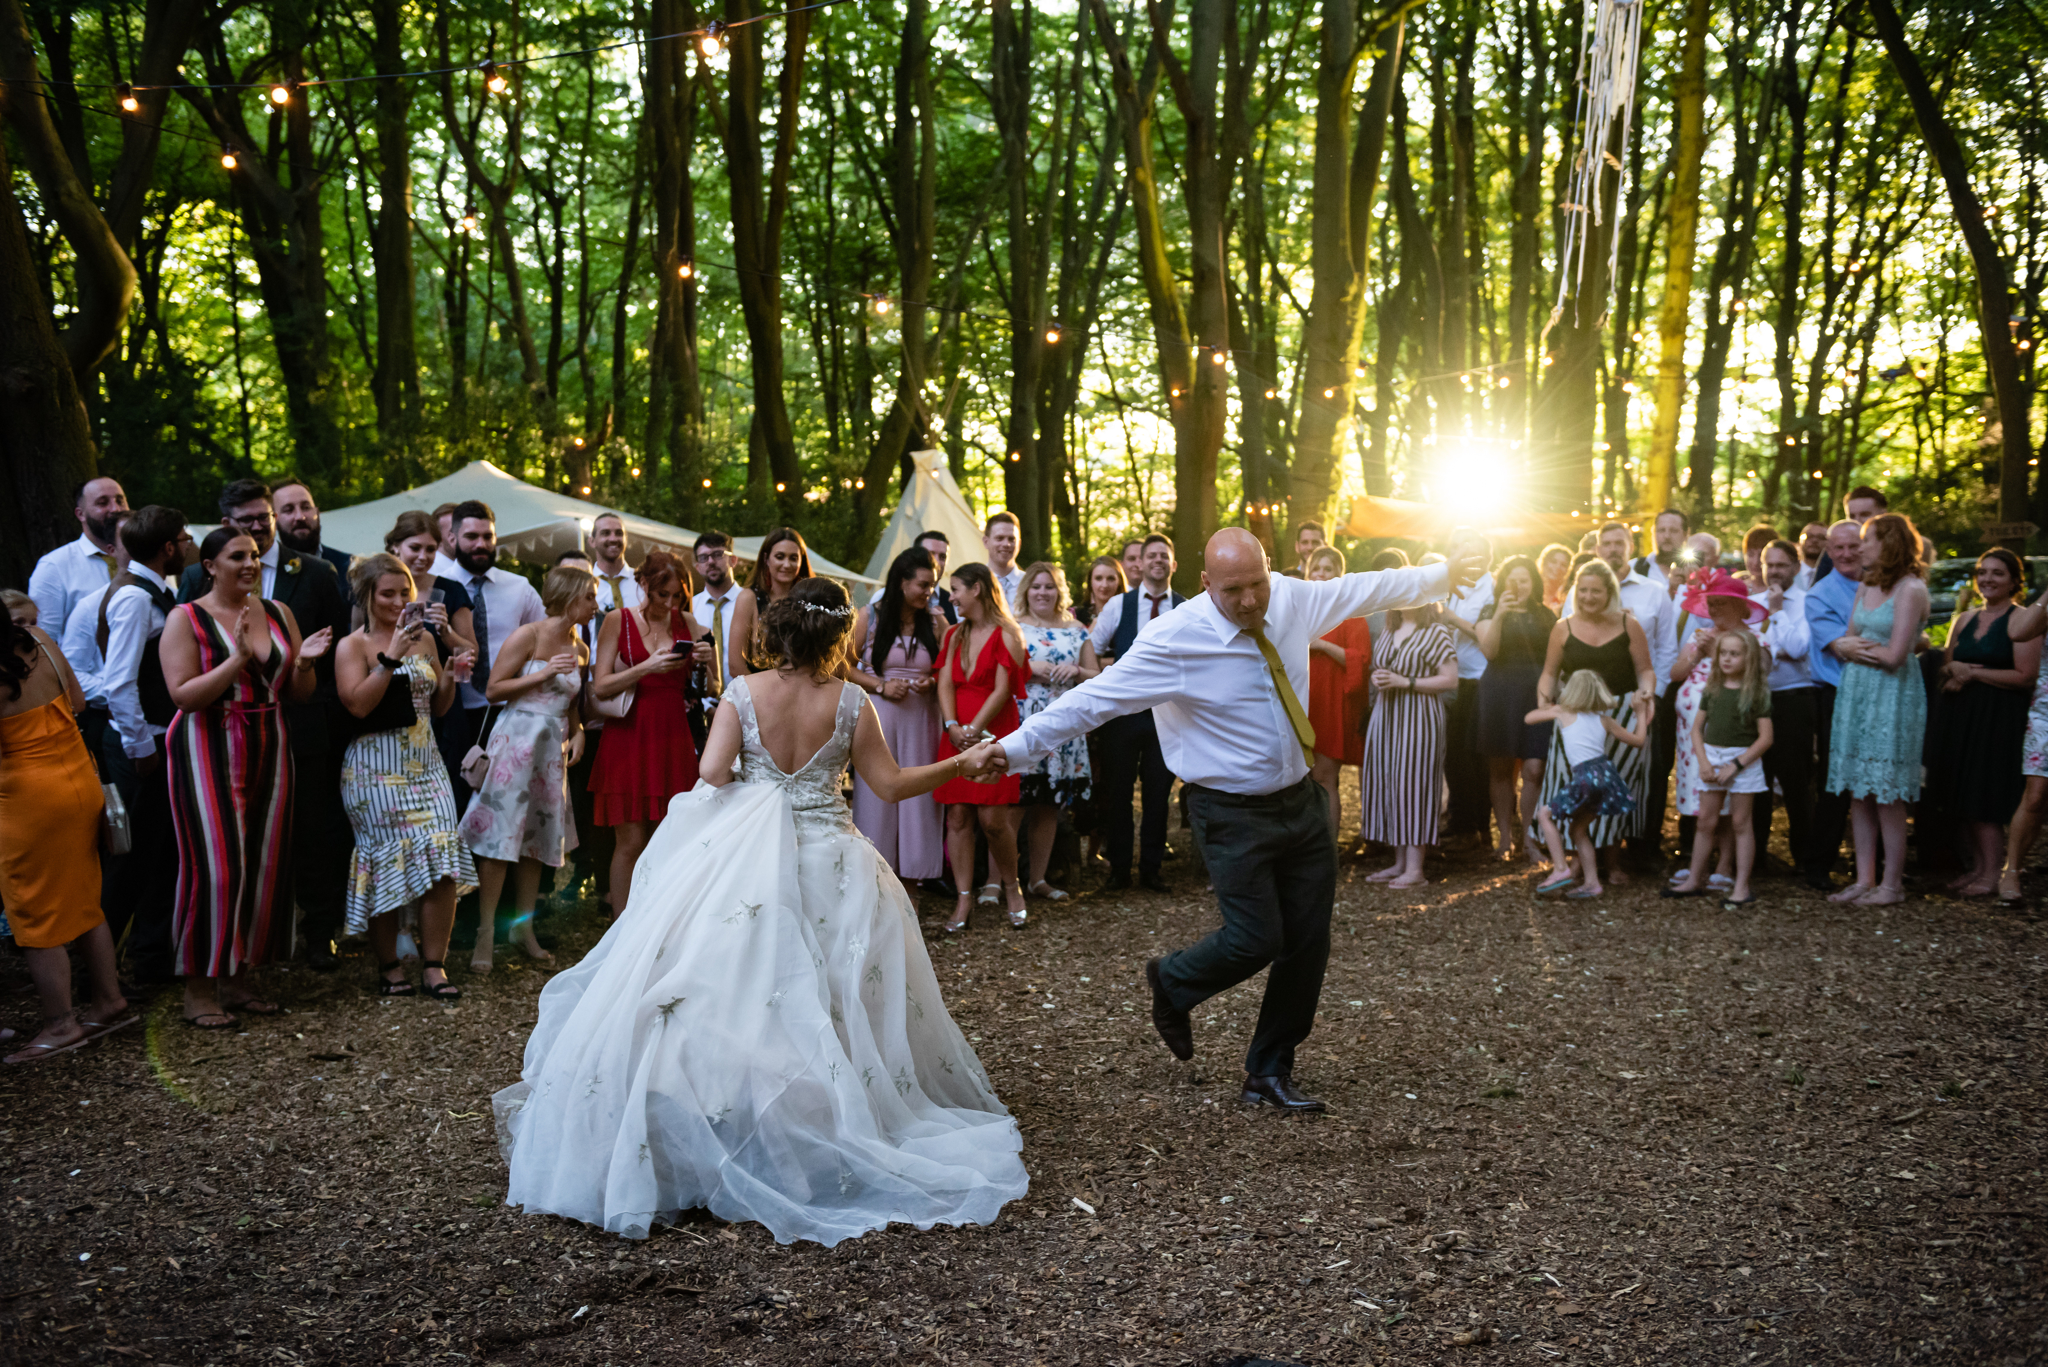 The father and daughter dance at Woodland Weddings